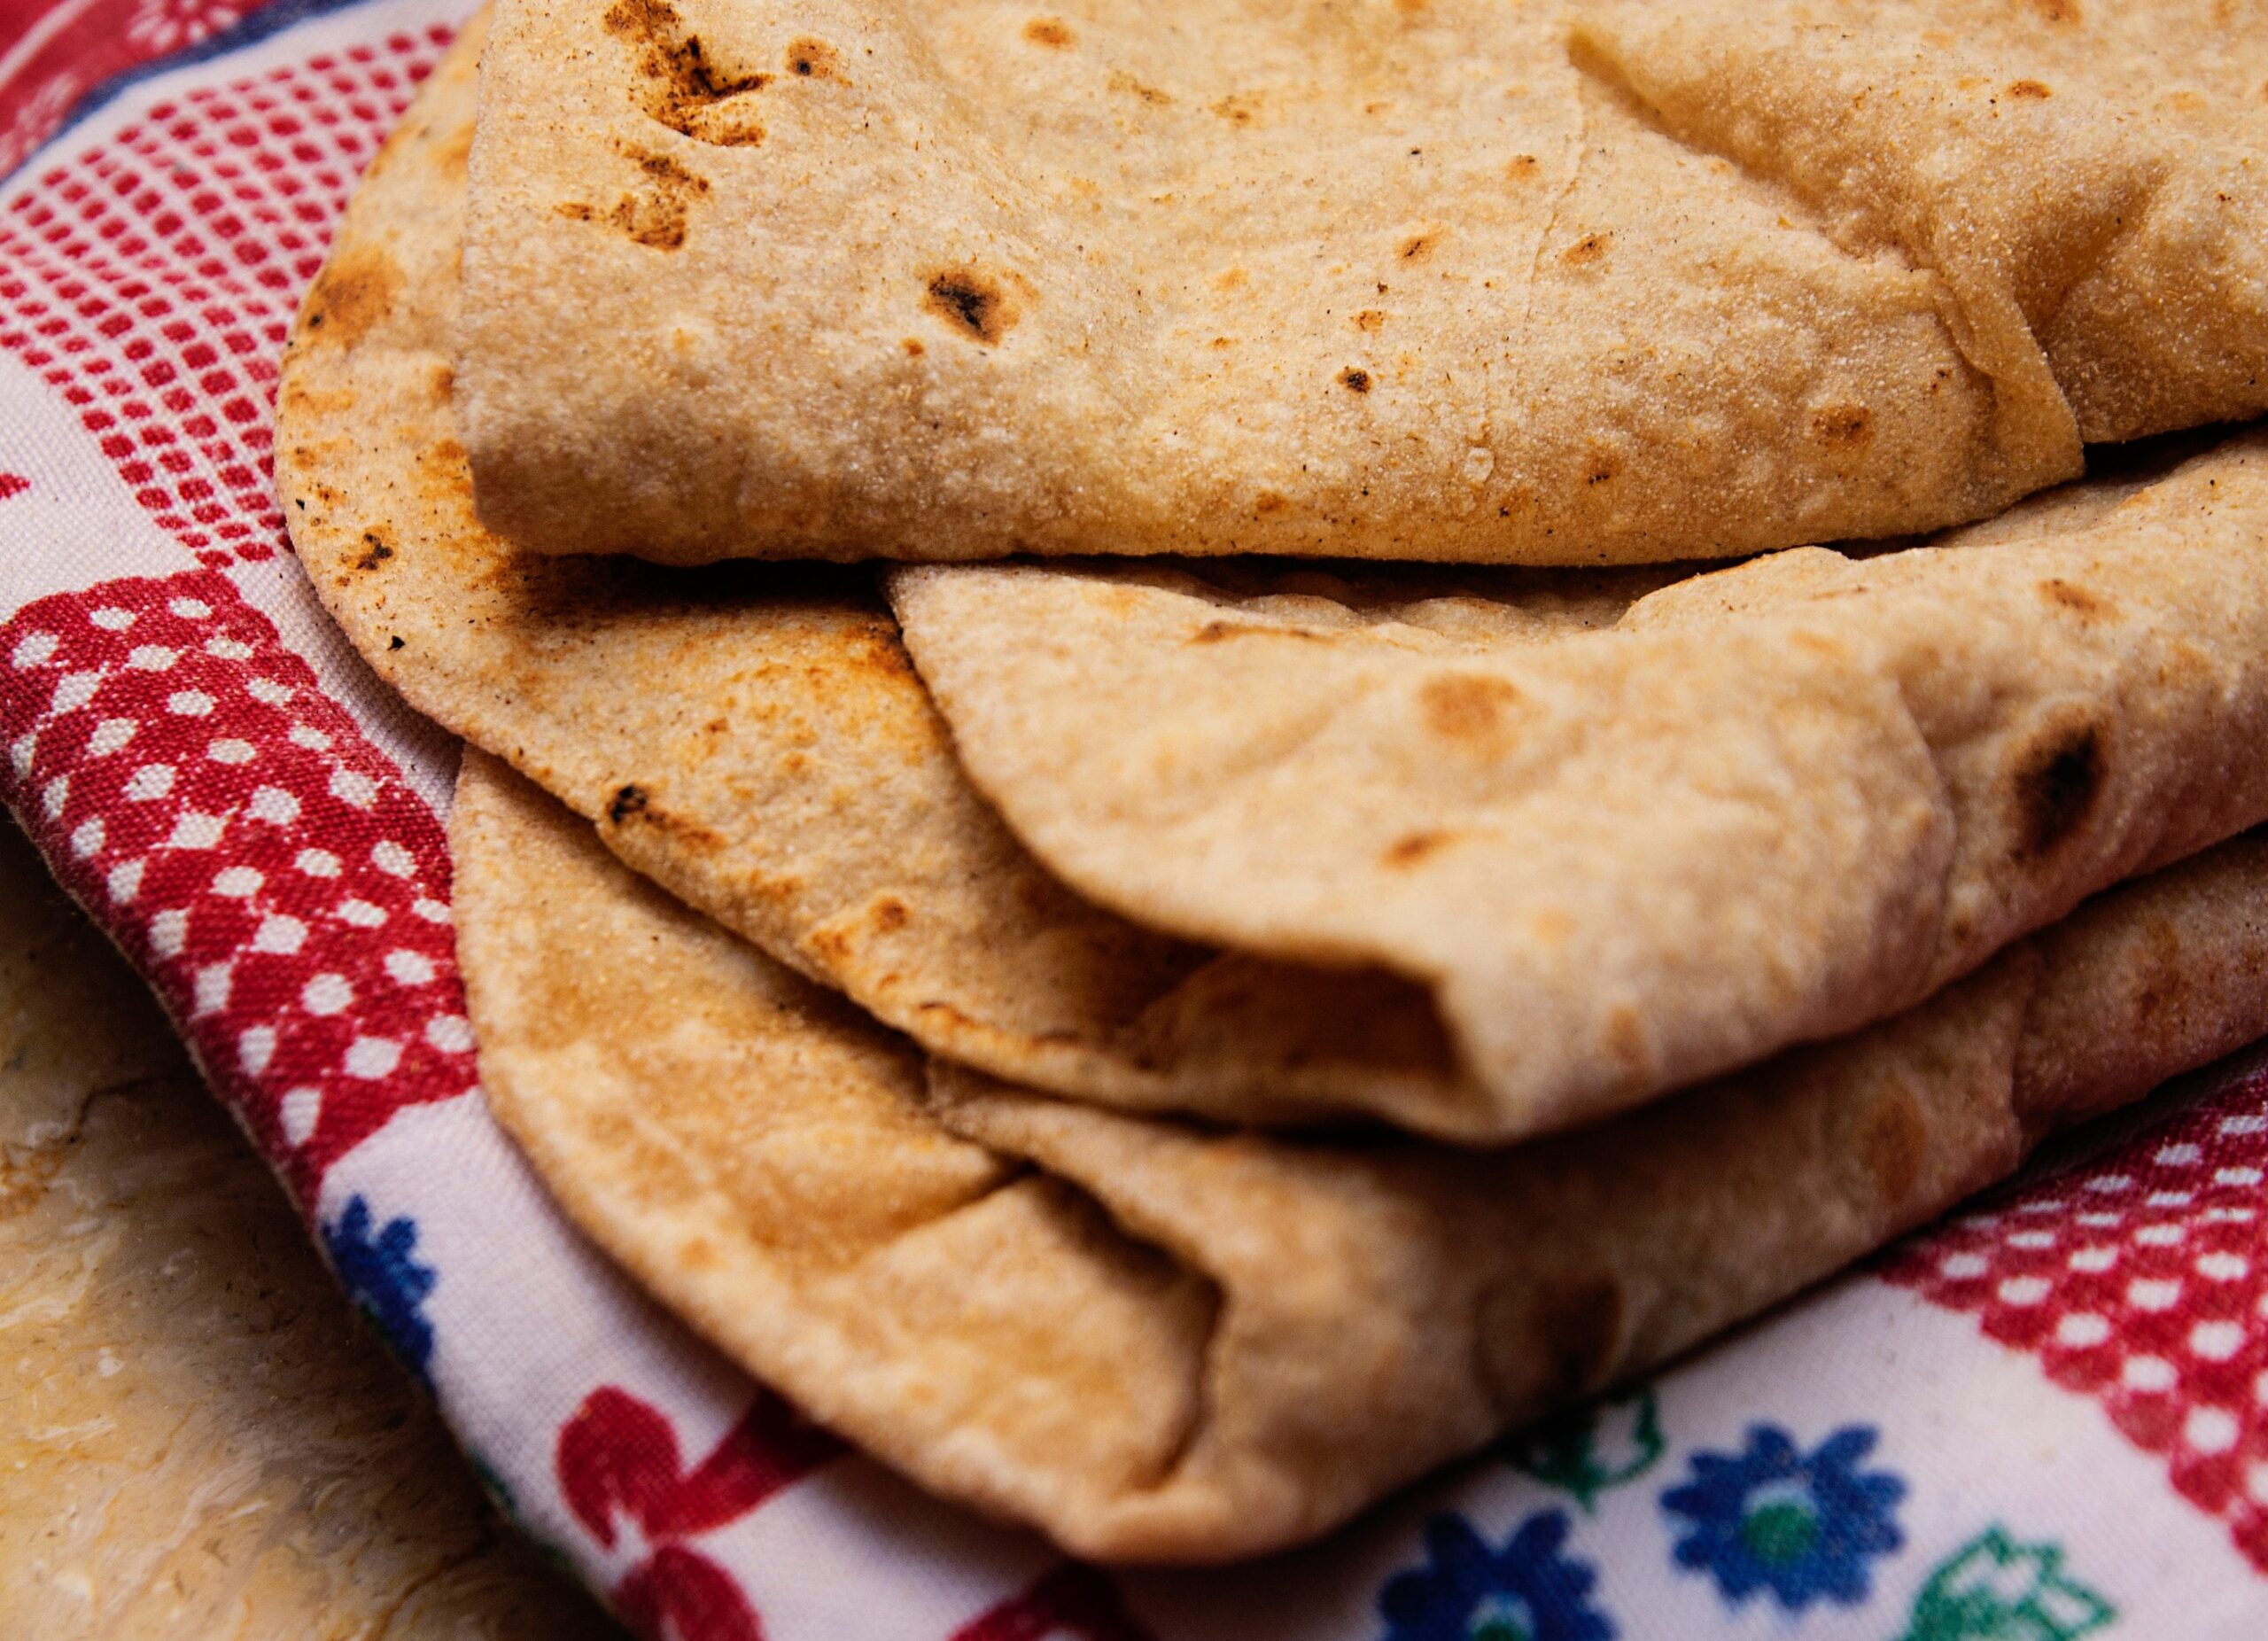 The Secret Behind Tortillas Is Nixtamalization